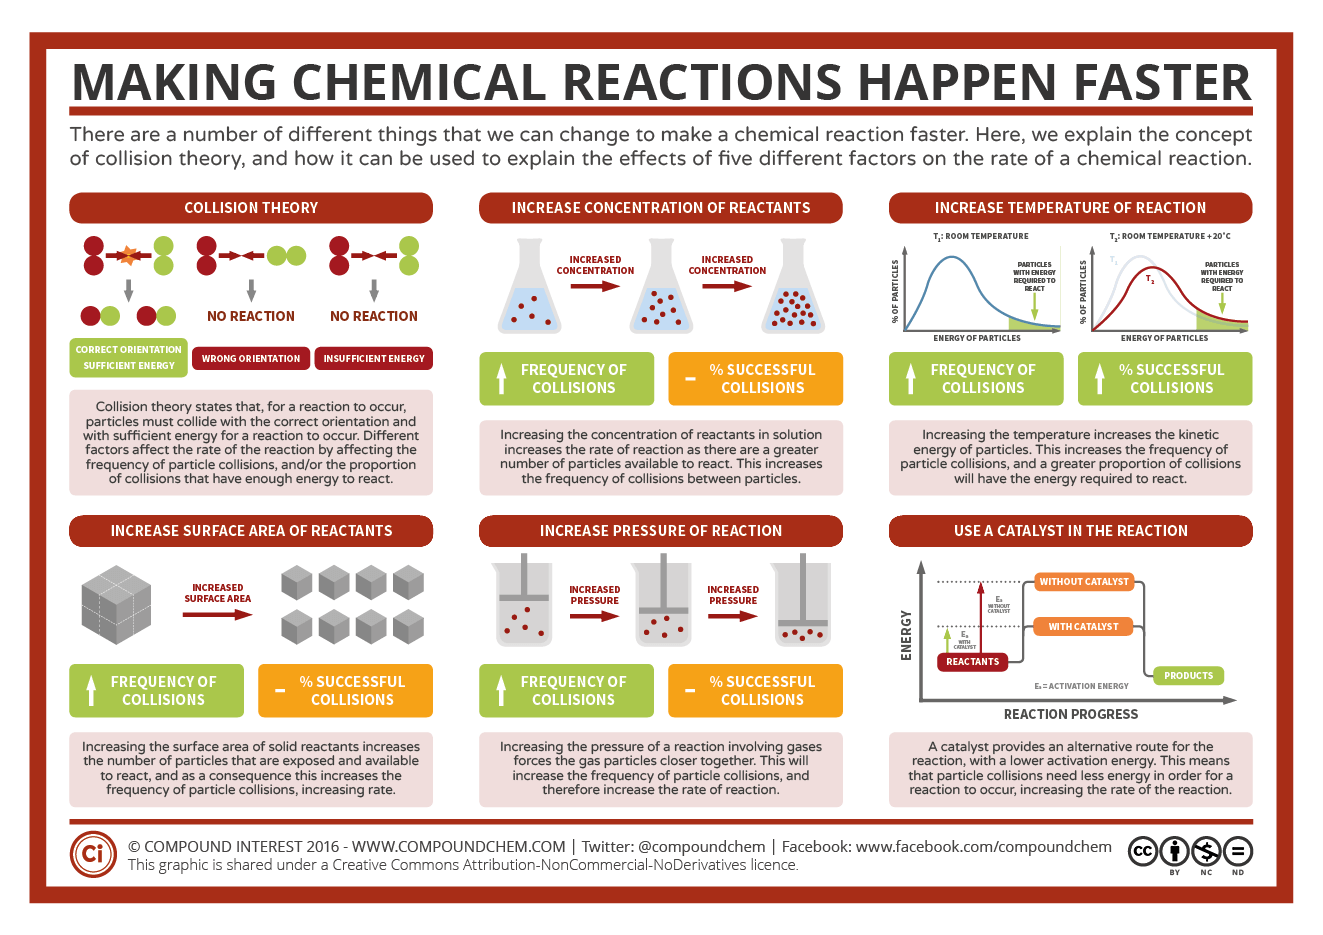 Making Reactions Faster: Factors Affecting Rates of Reaction